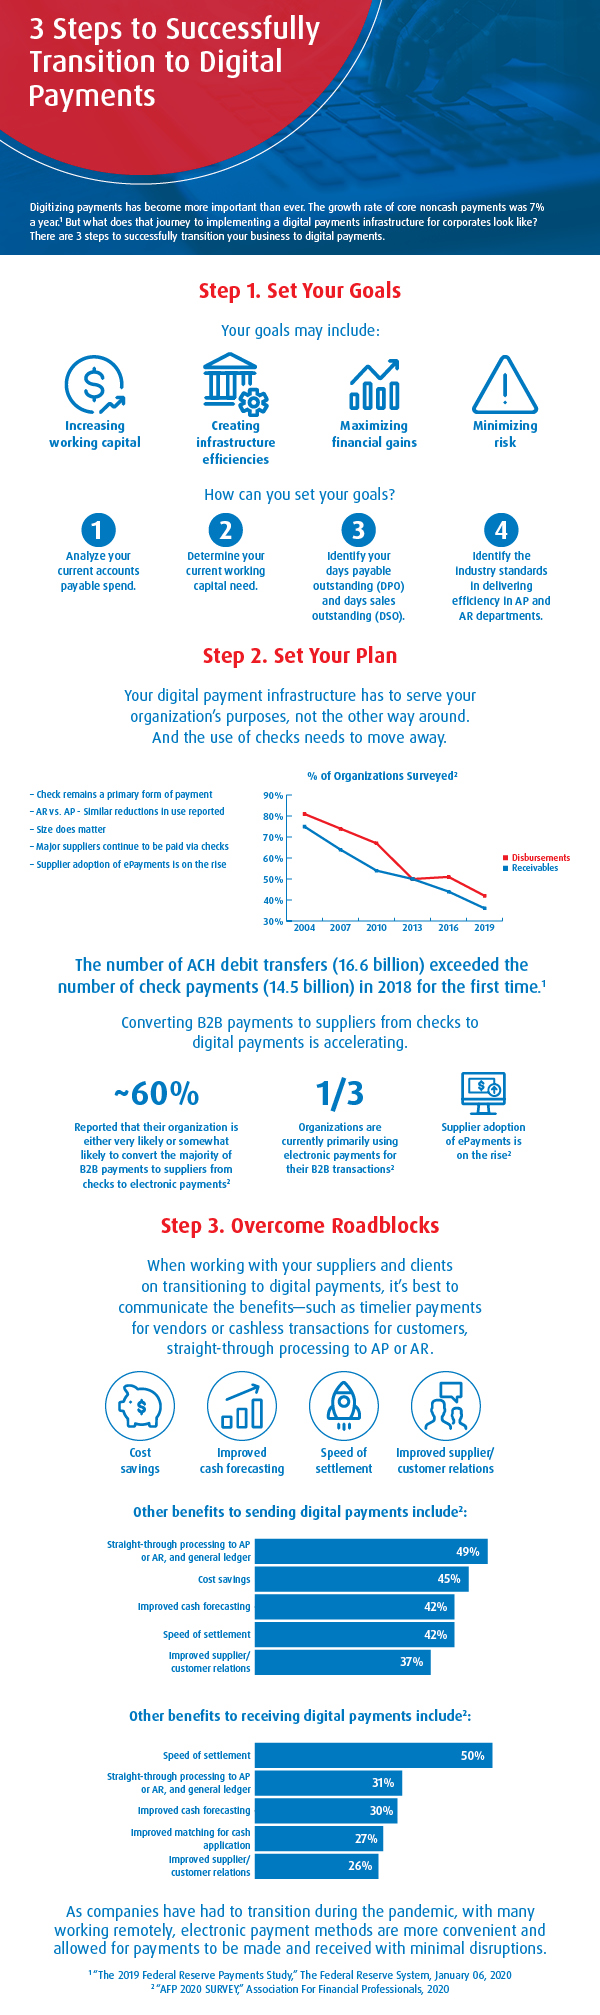 3 Steps to Successfully Transition to Digital Payments